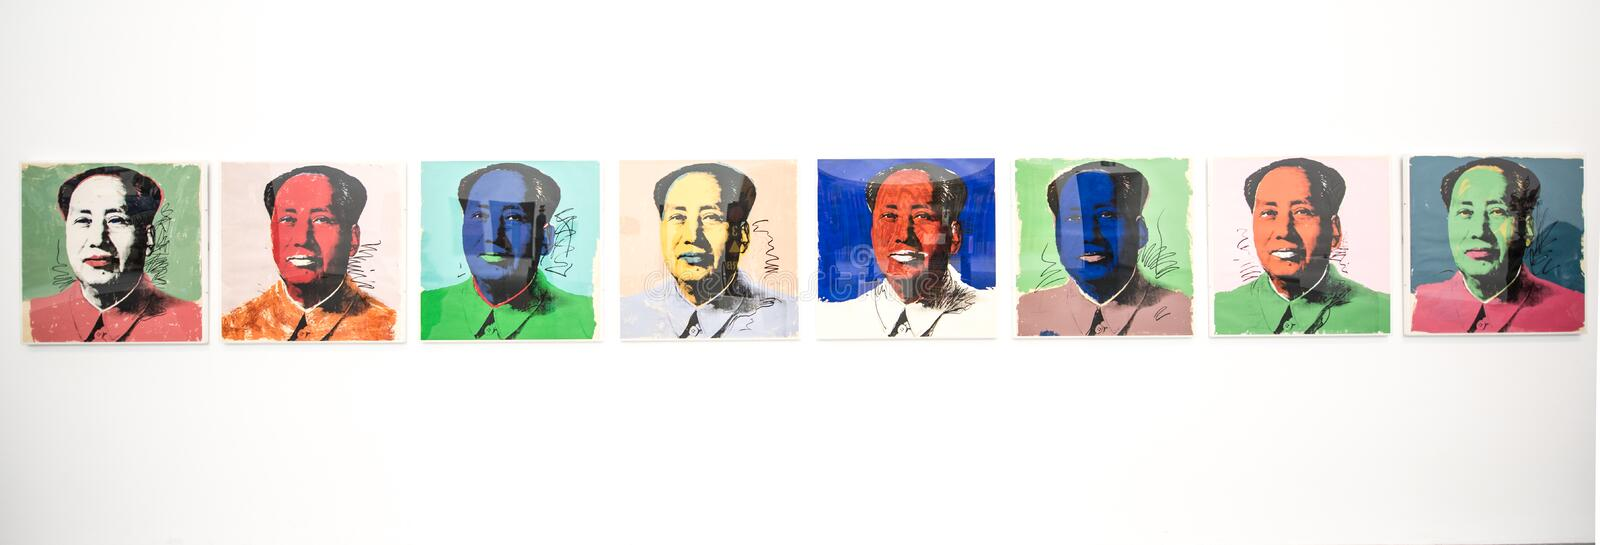 Andy Warhol`s `Mao` prints. Andy Warhol's Mao Tse Tung 1972 is a silk-screen portrait of the Chinese leader that was made in many versions. It is one of stock images